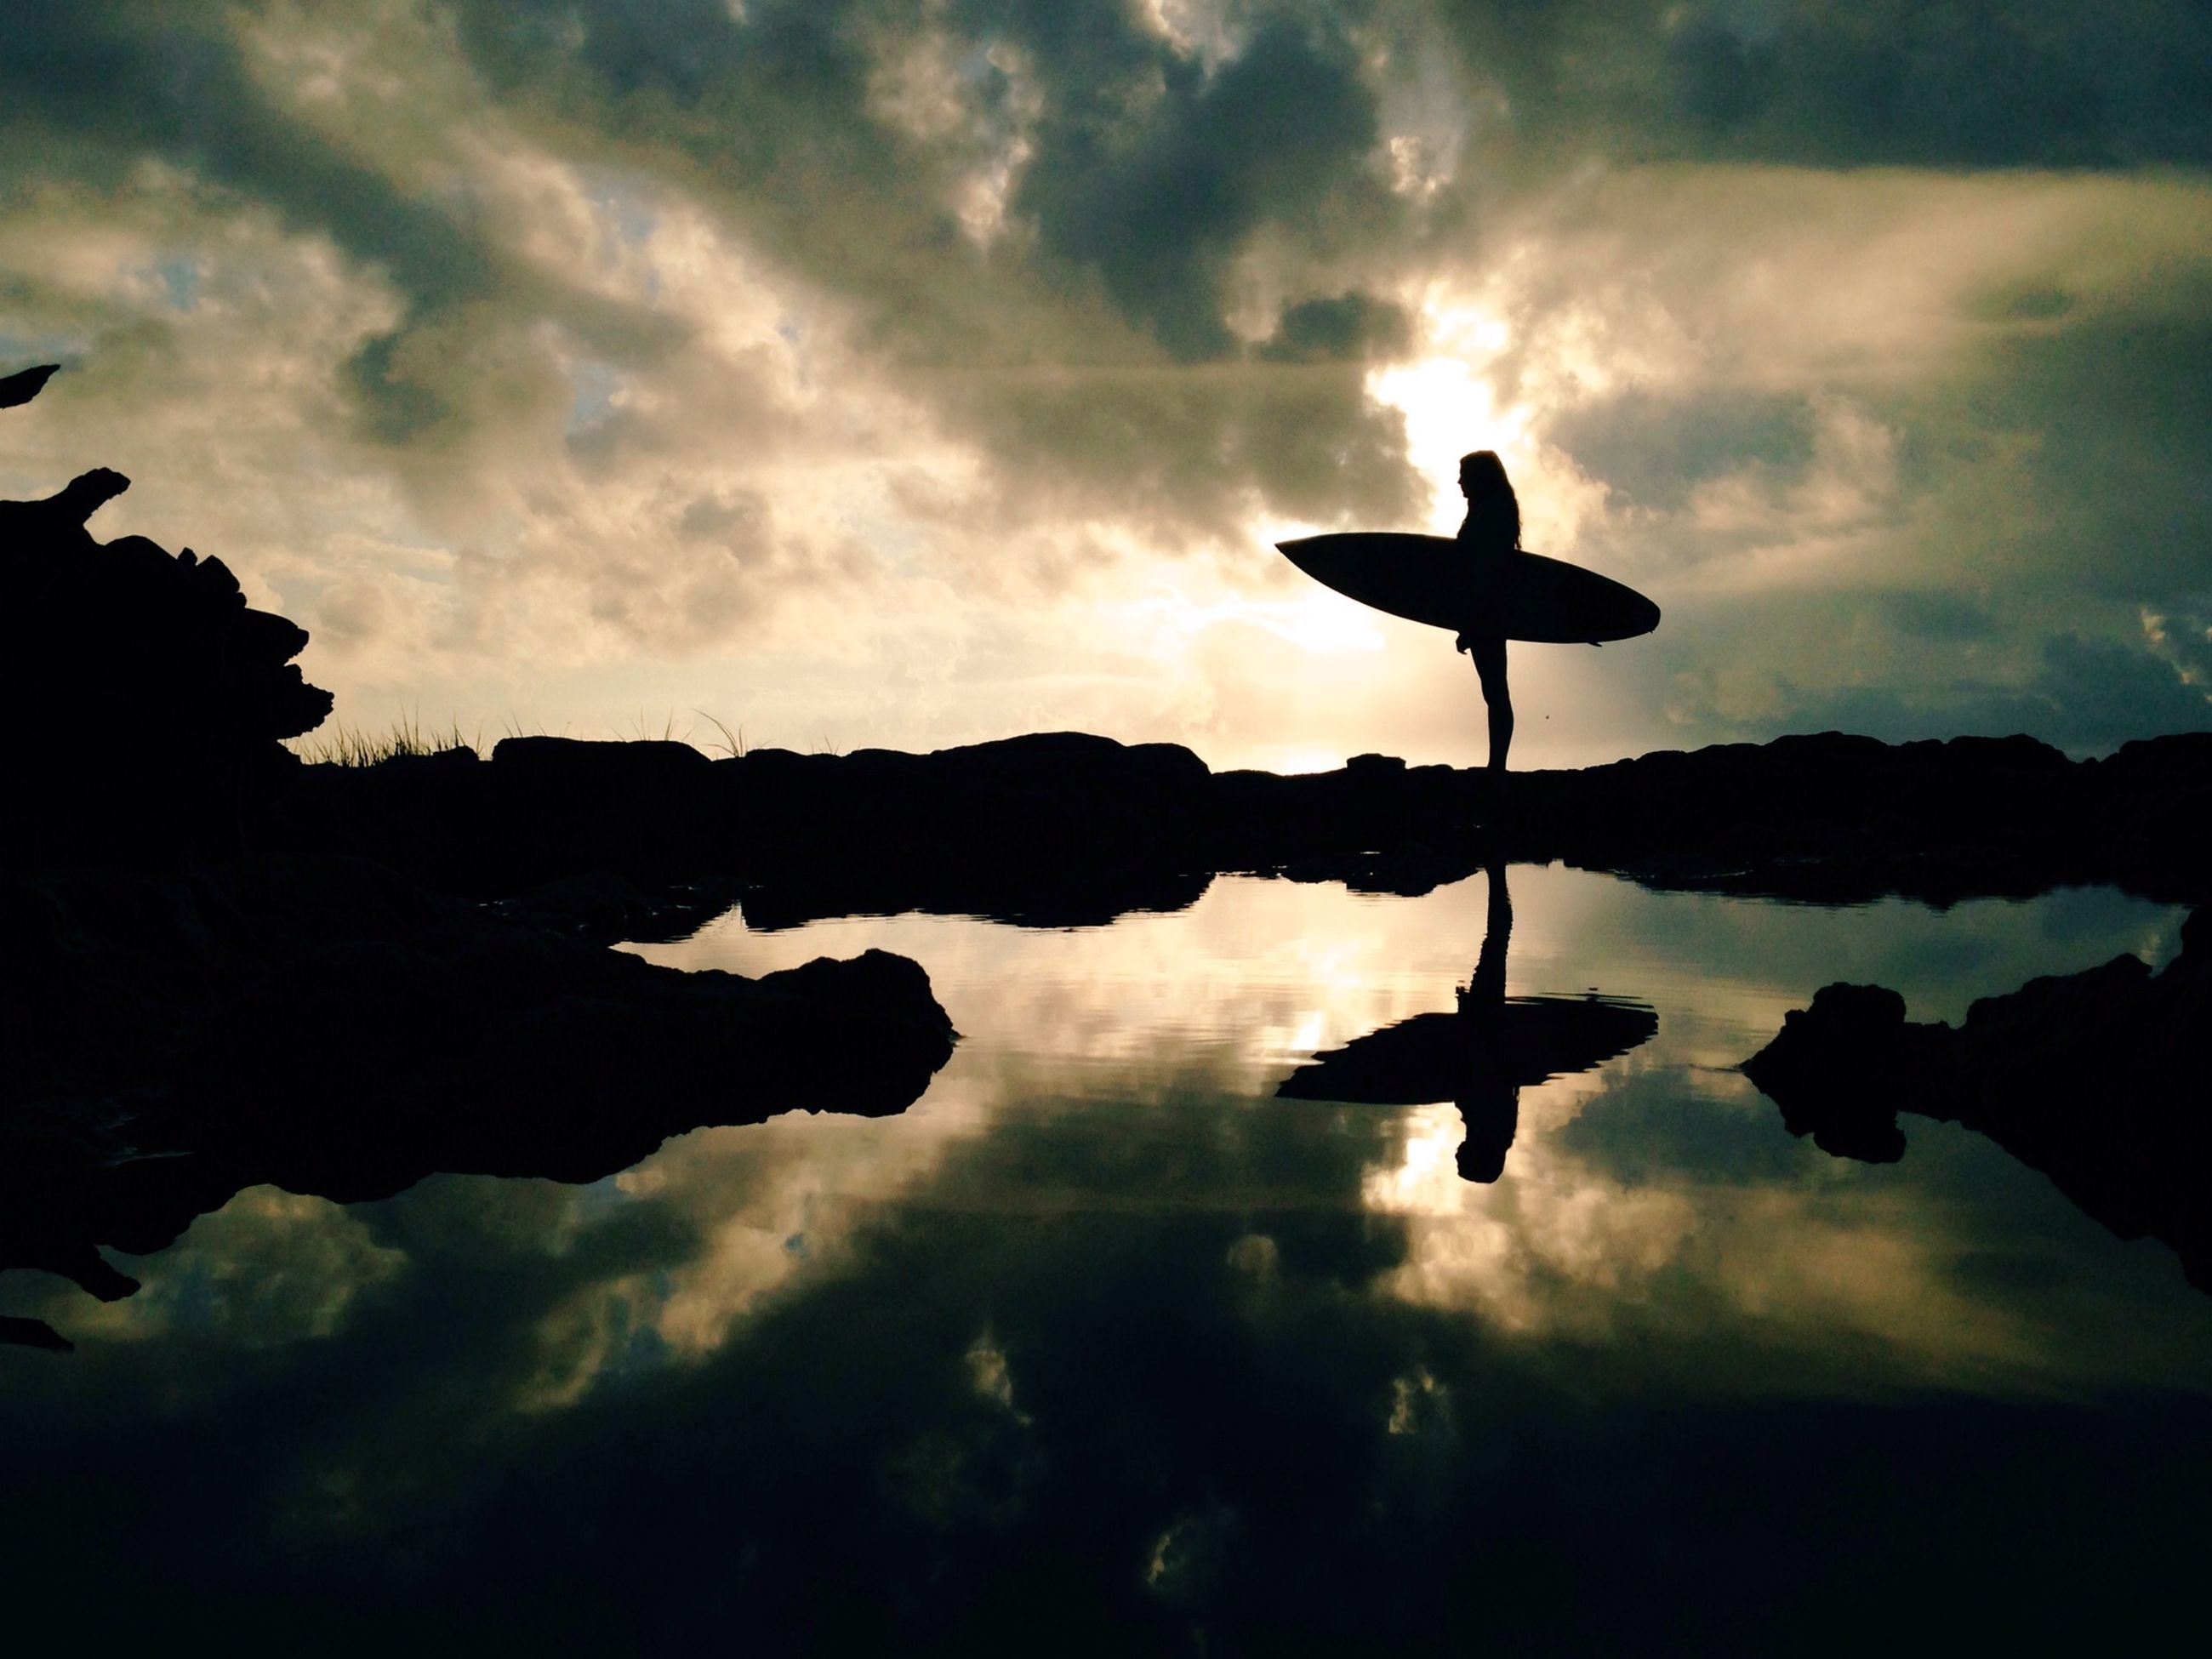 silhouette, sky, reflection, cloud - sky, water, sunset, lake, cloudy, tranquility, tranquil scene, beauty in nature, cloud, scenics, bird, dusk, nature, weather, standing water, idyllic, waterfront